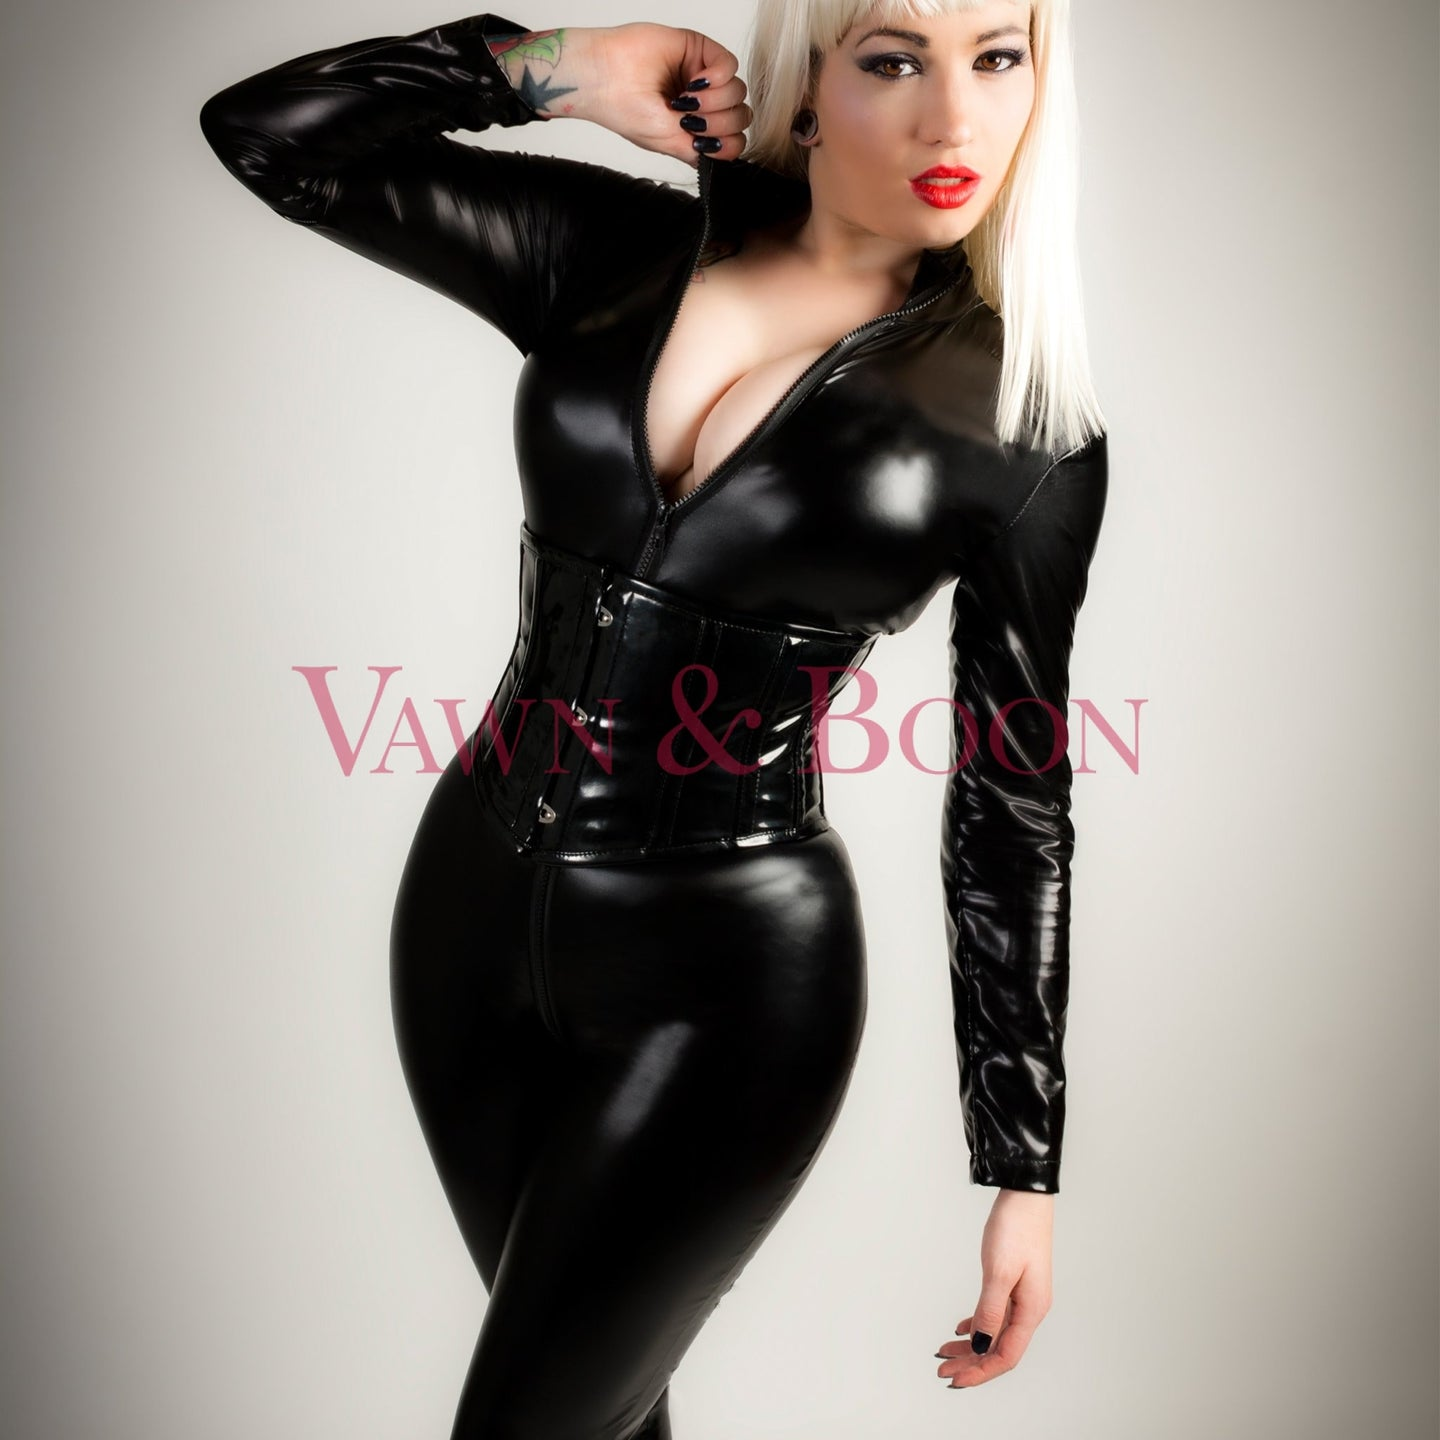 Vawn and Boon Wet Look Stretchy Catsuit